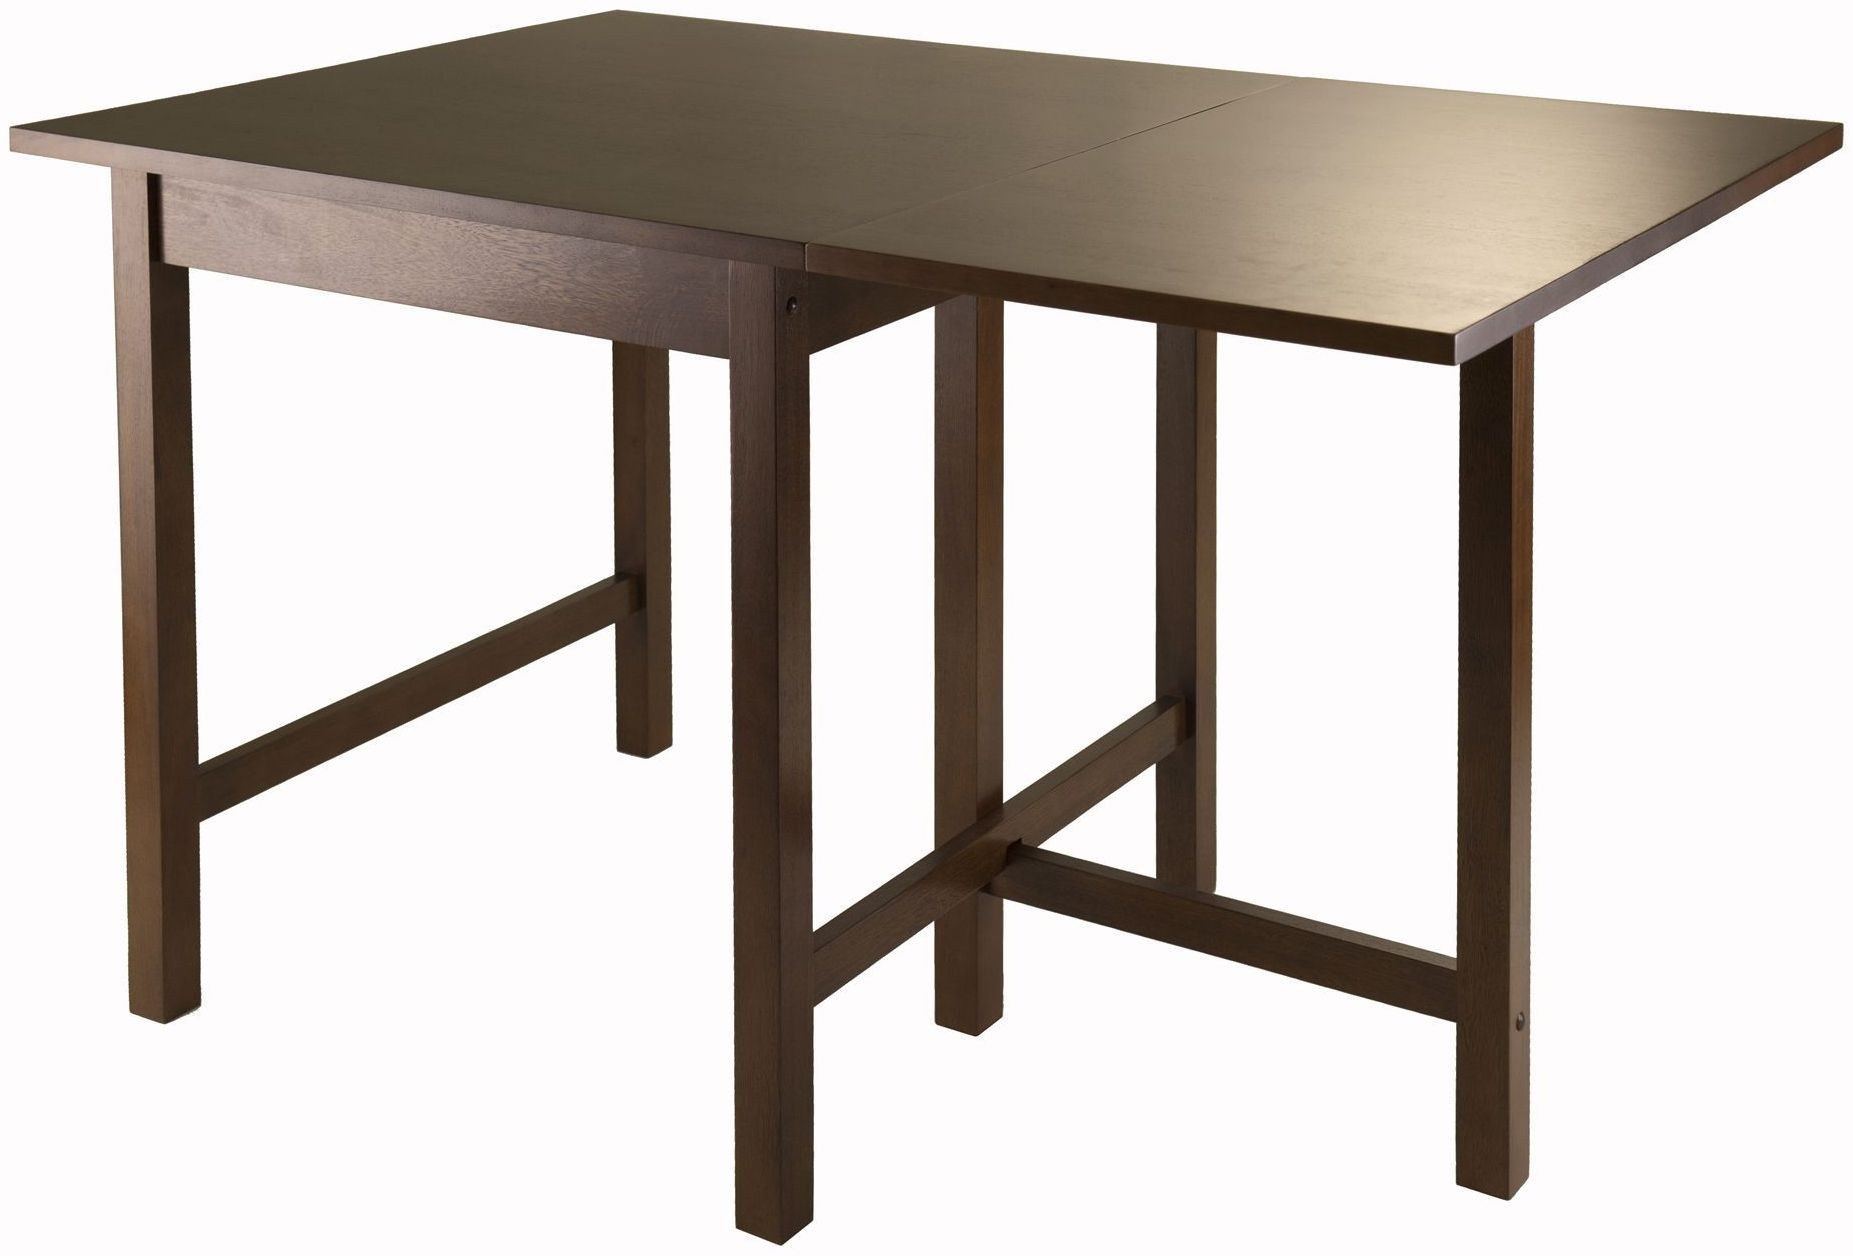 Drop Leaf Table Dining: Lynden Walnut Drop Leaf Extendable Dining Table From